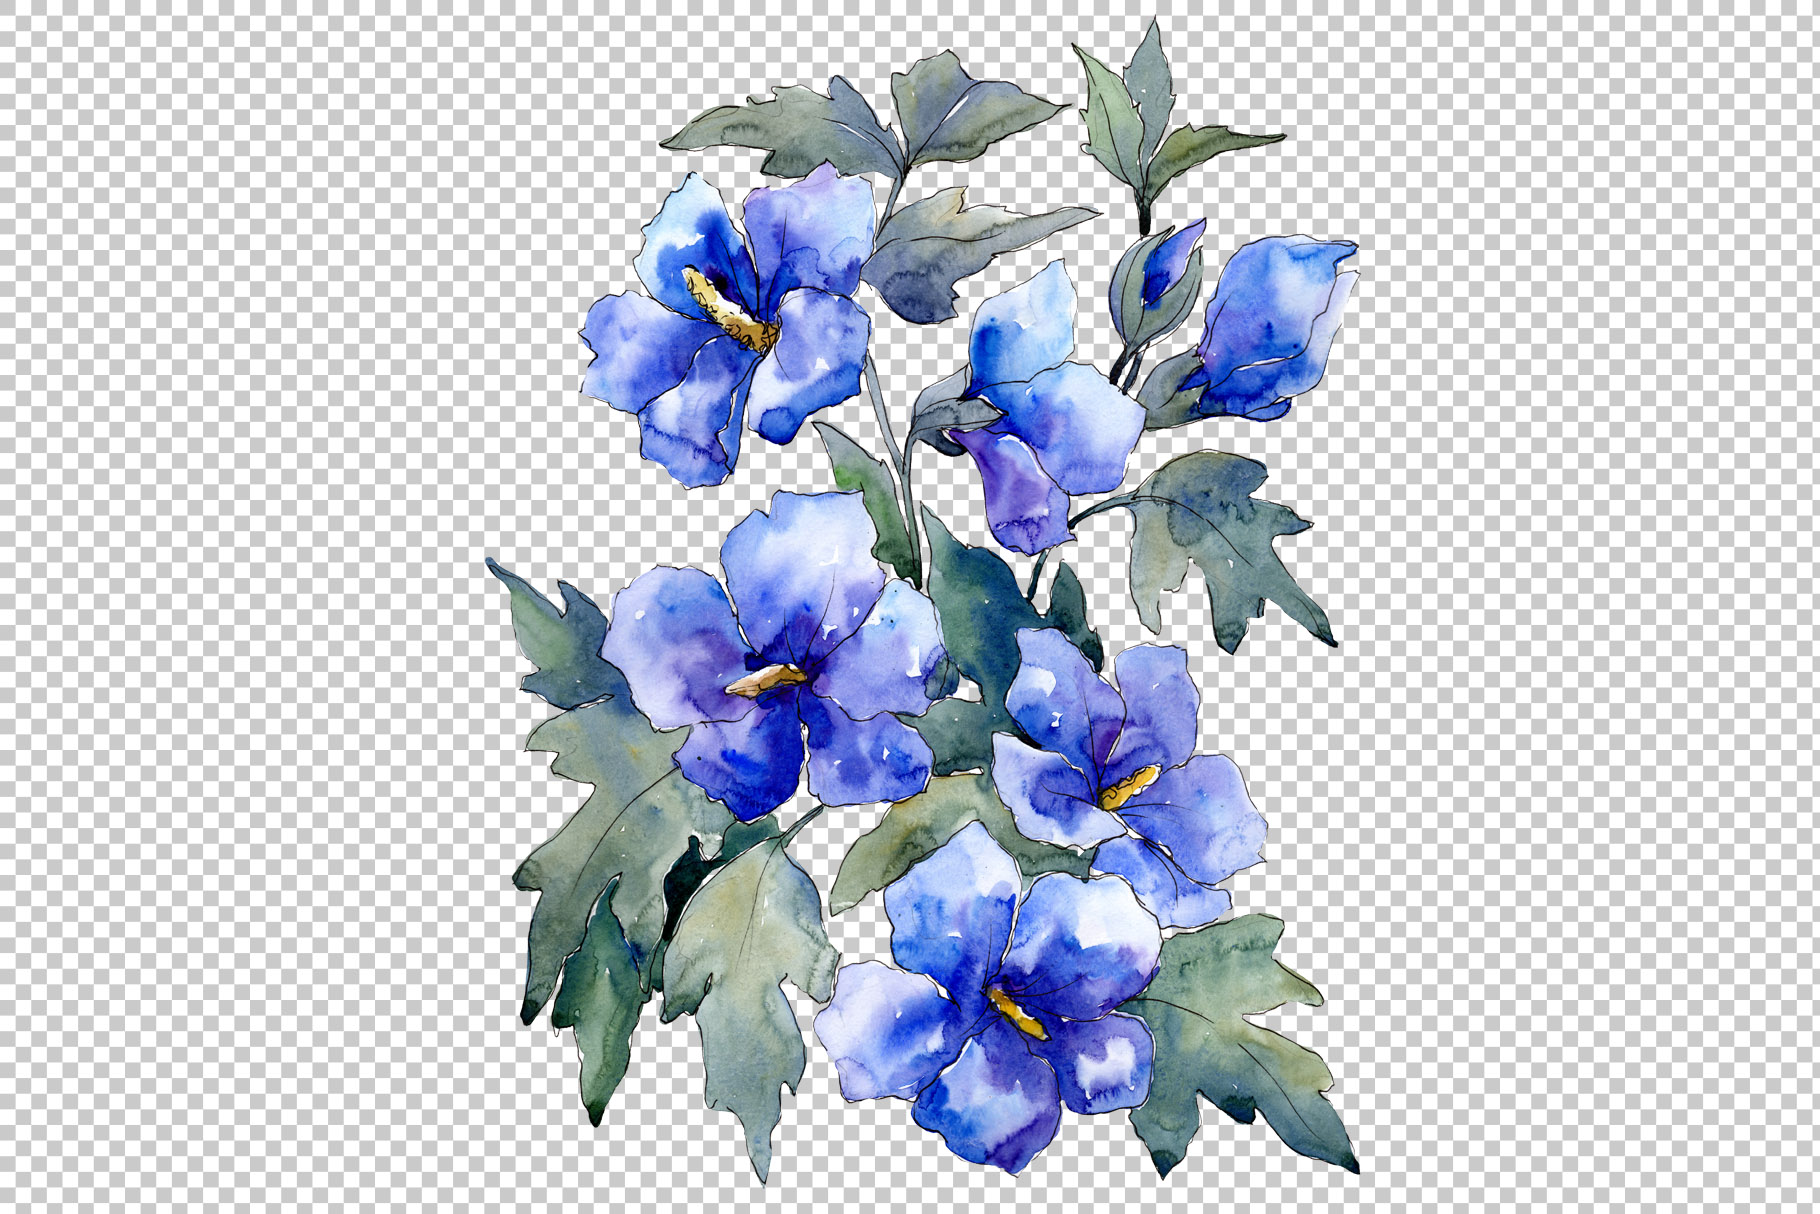 Bouquet of flowers blues Nona watercolor png example image 2